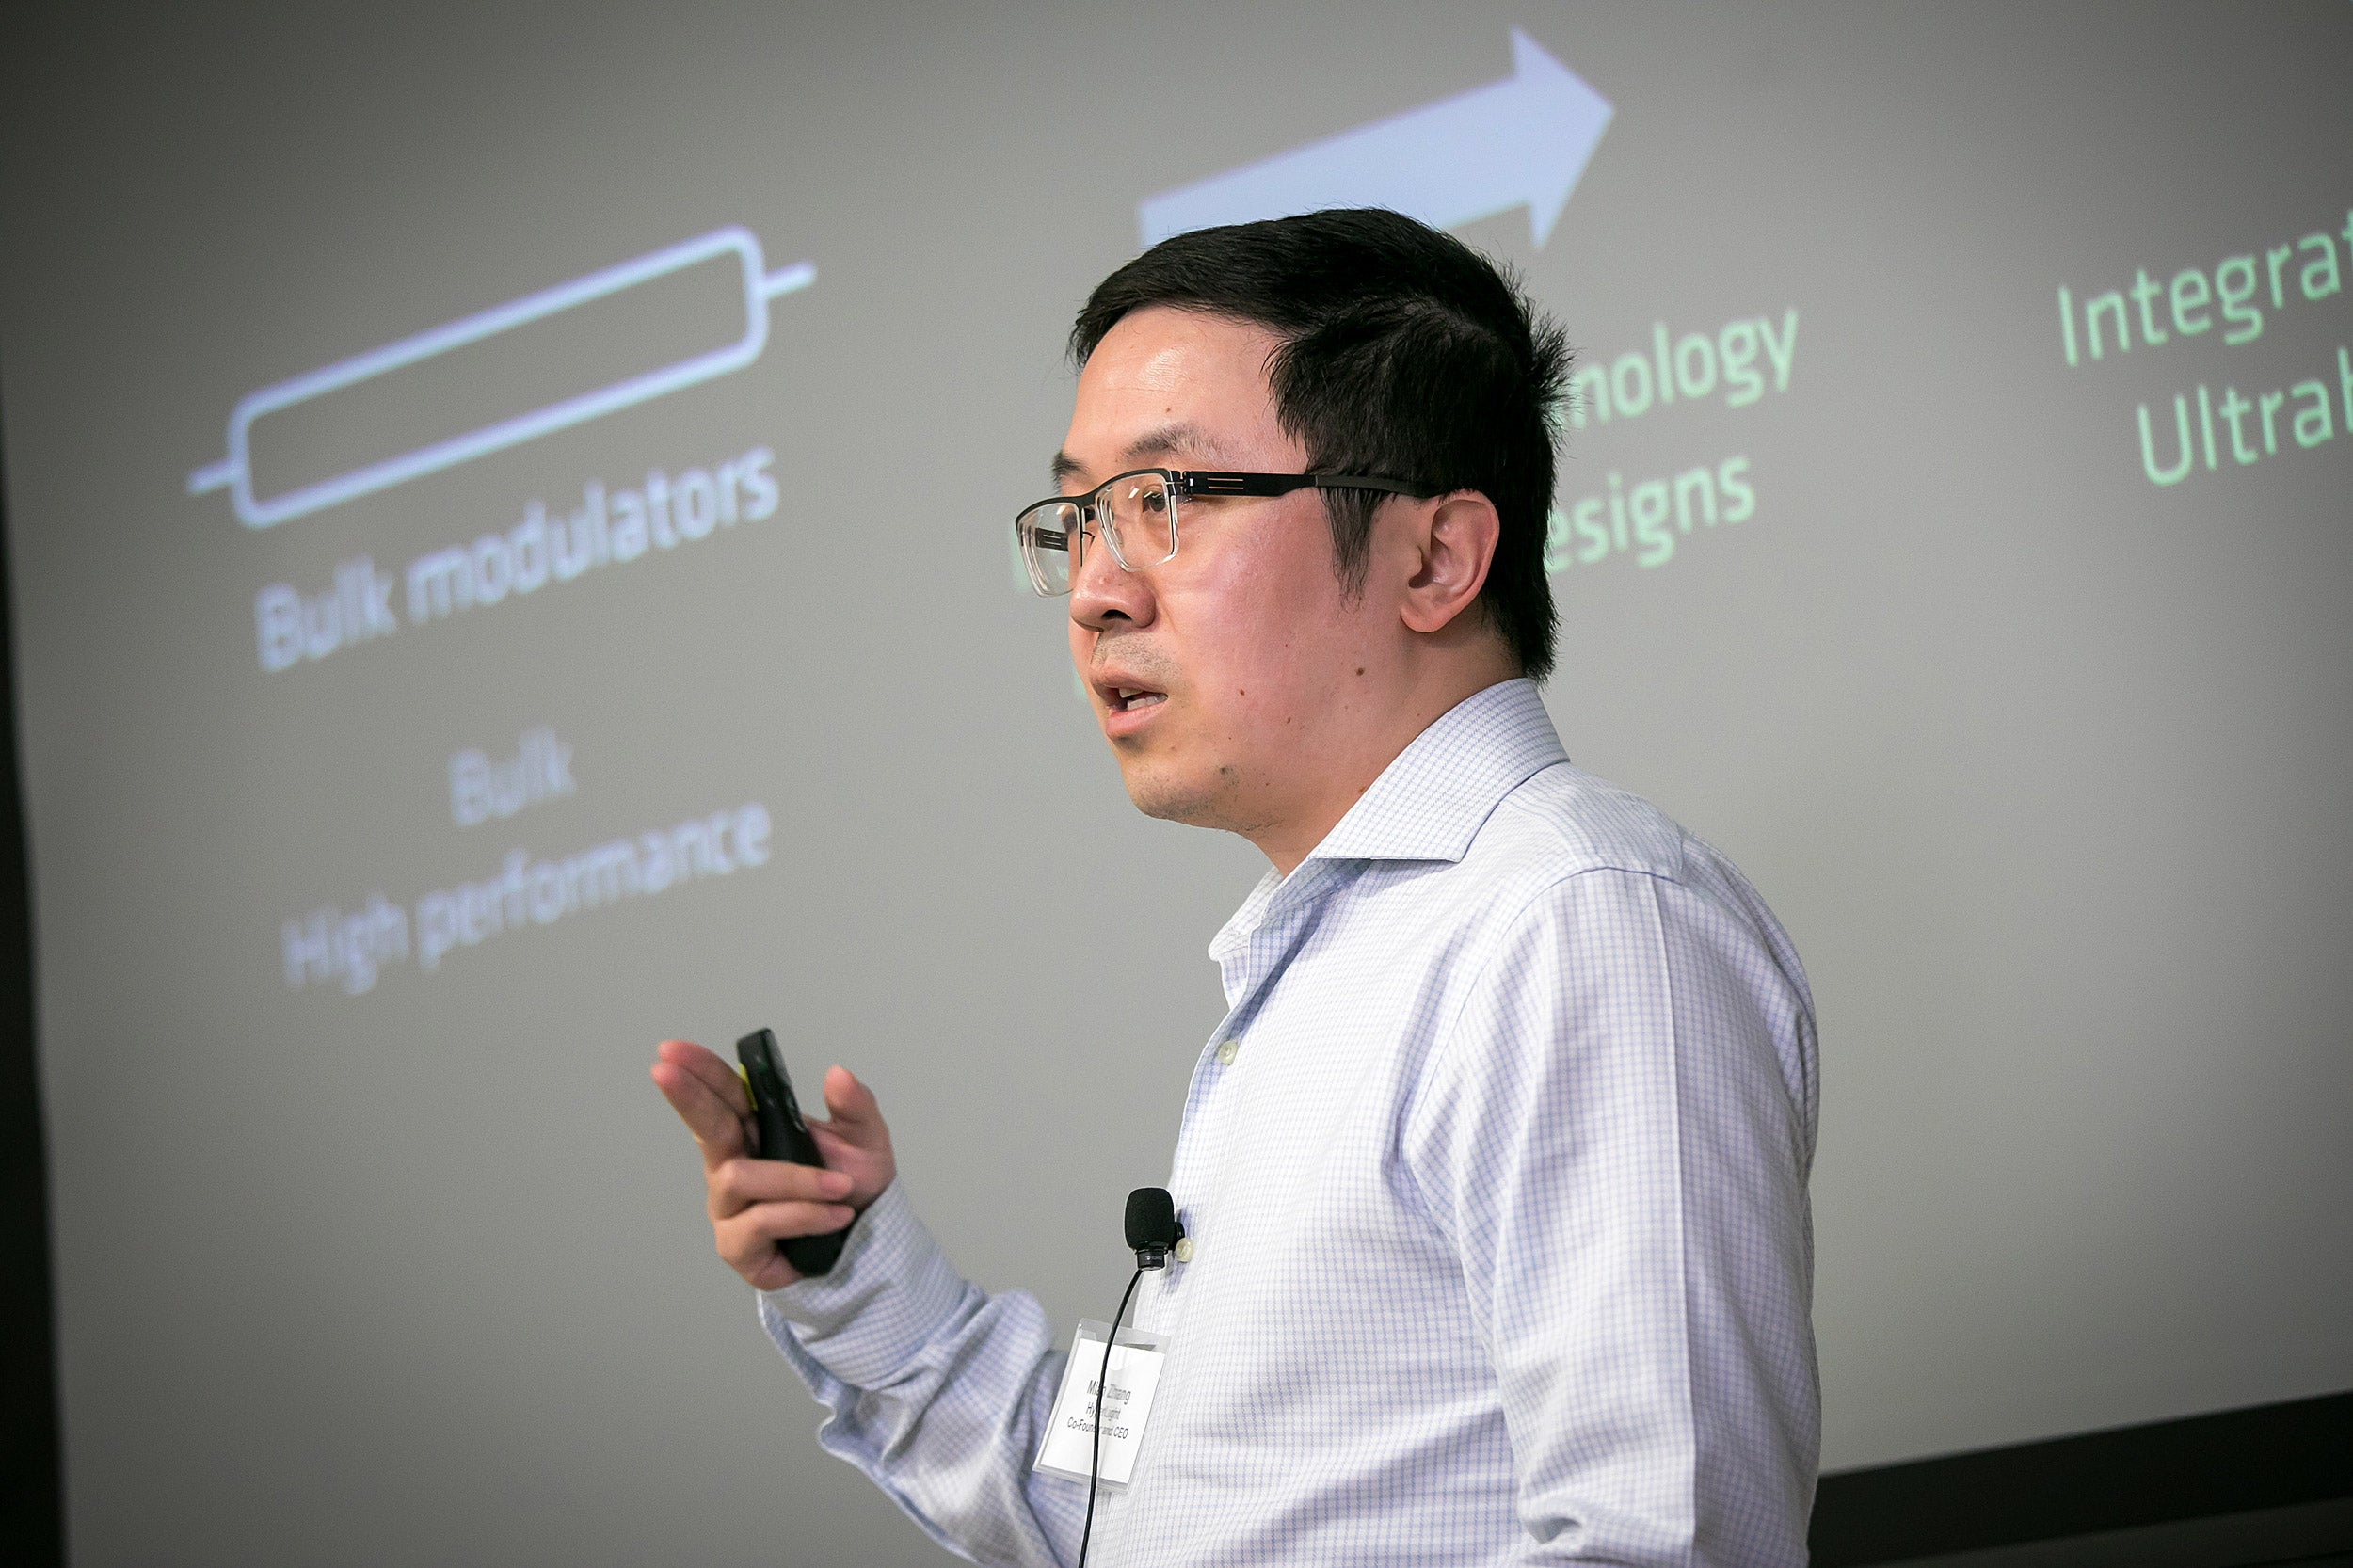 Mian Zhang giving a presentation